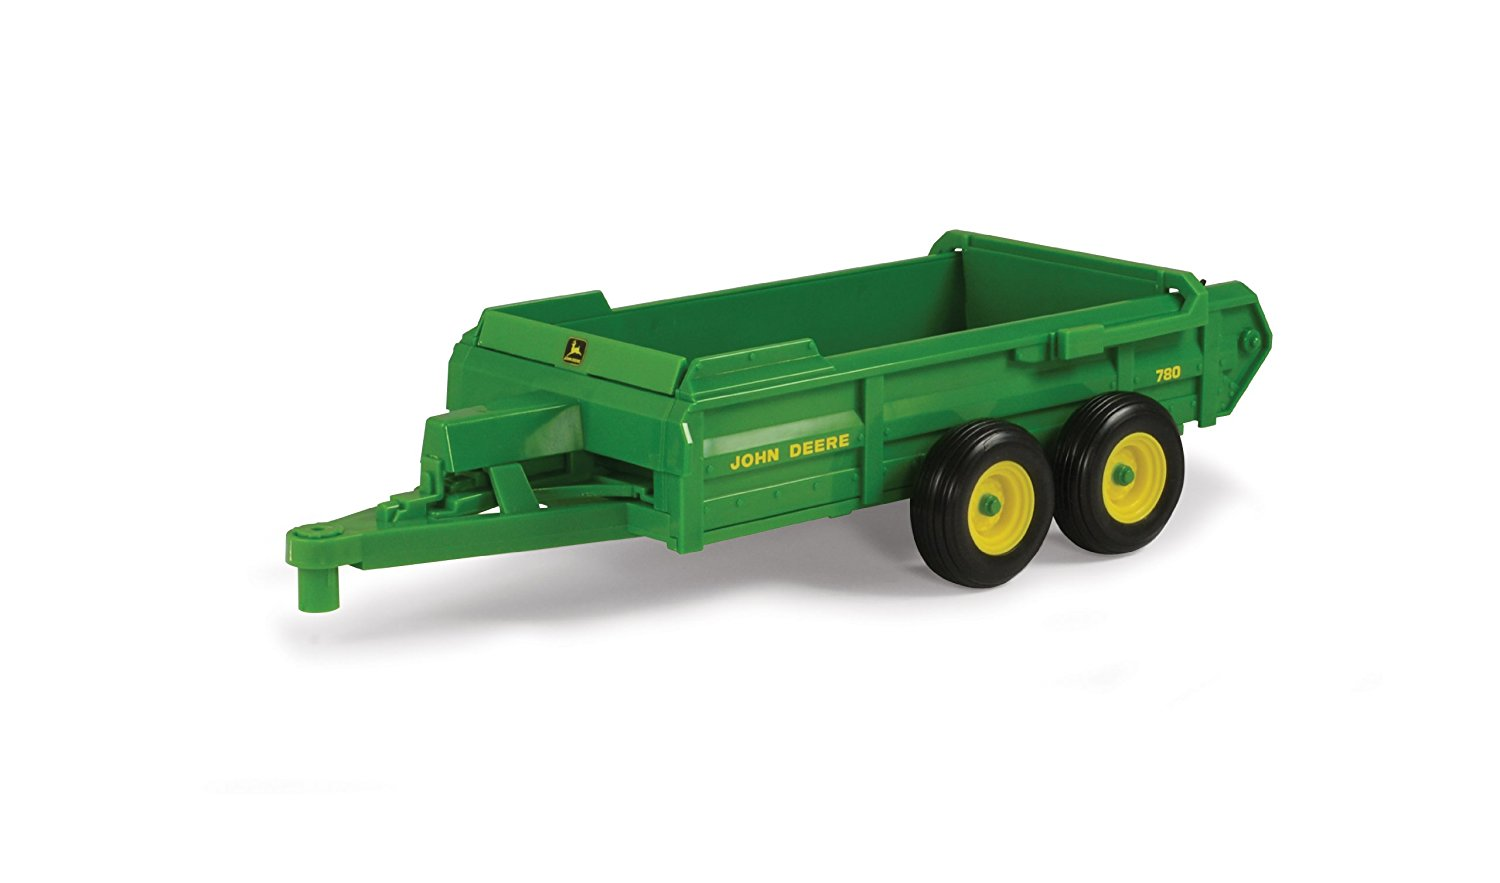 Ertl Big Farm 1:16 John Deere Hydra 789 Spreader, ERTL's Big Farm is just like the real... by